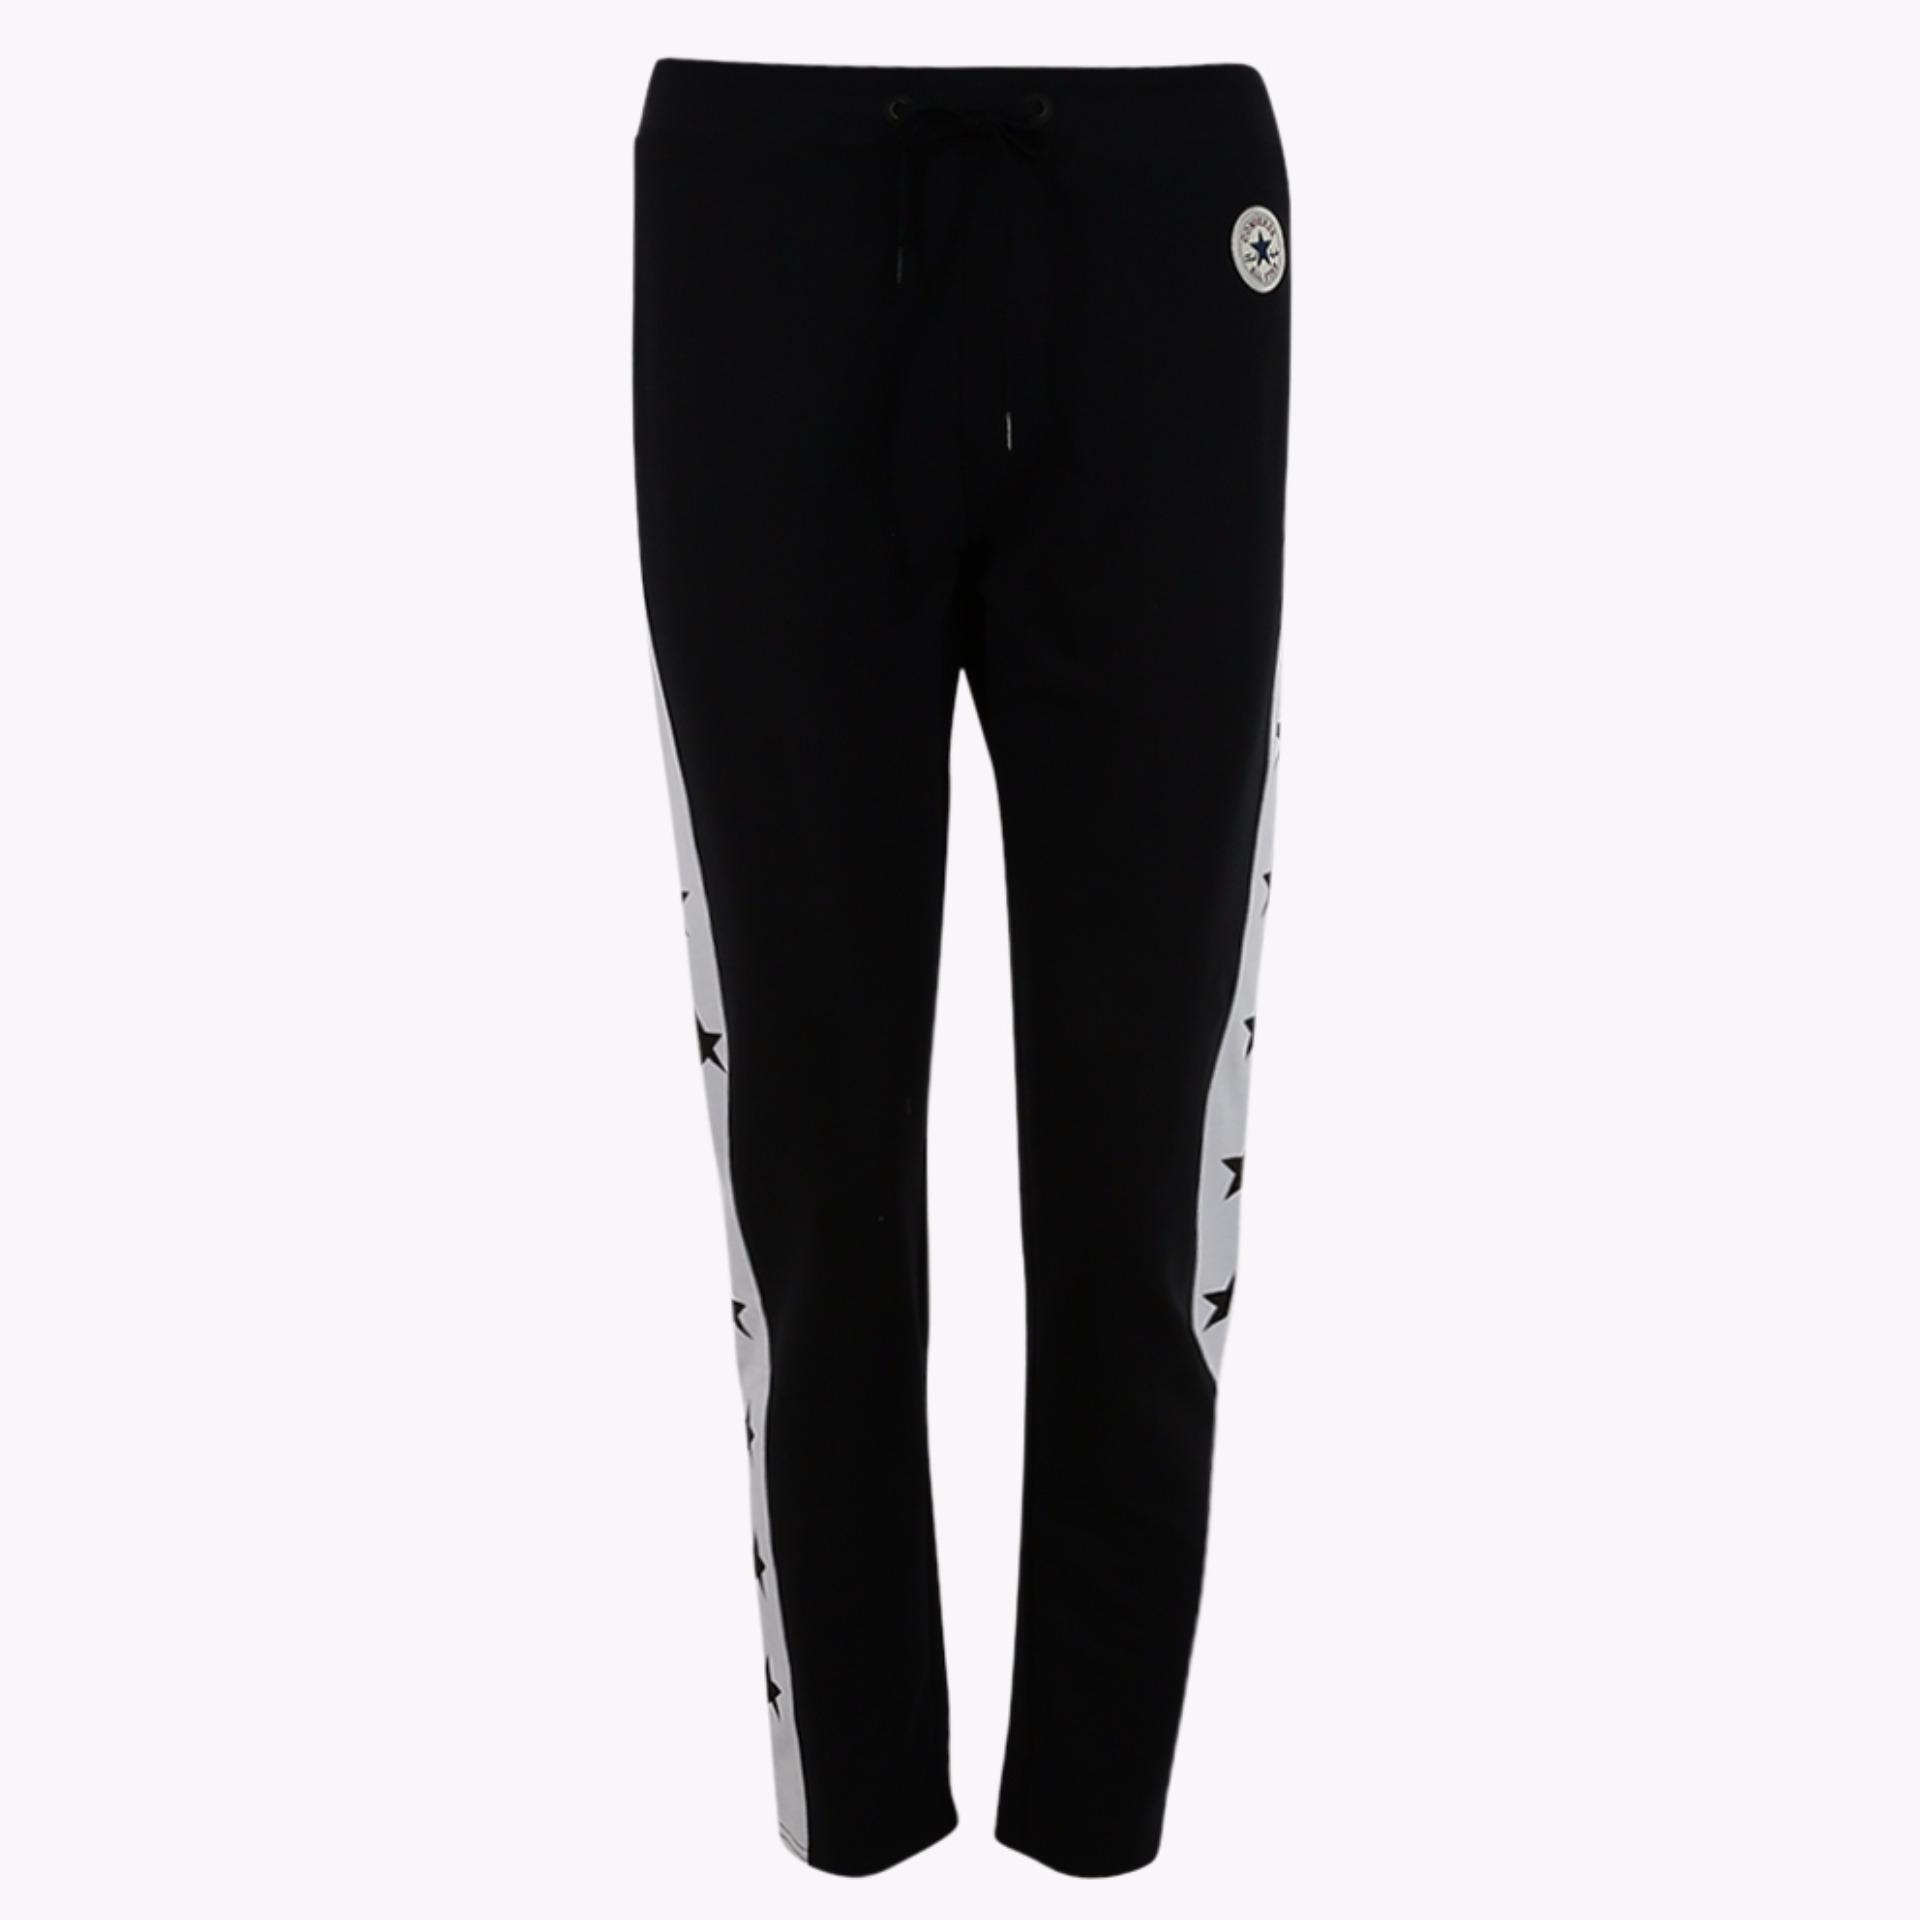 Model Converse Star Print Cp Women S Pants Hitam Terbaru